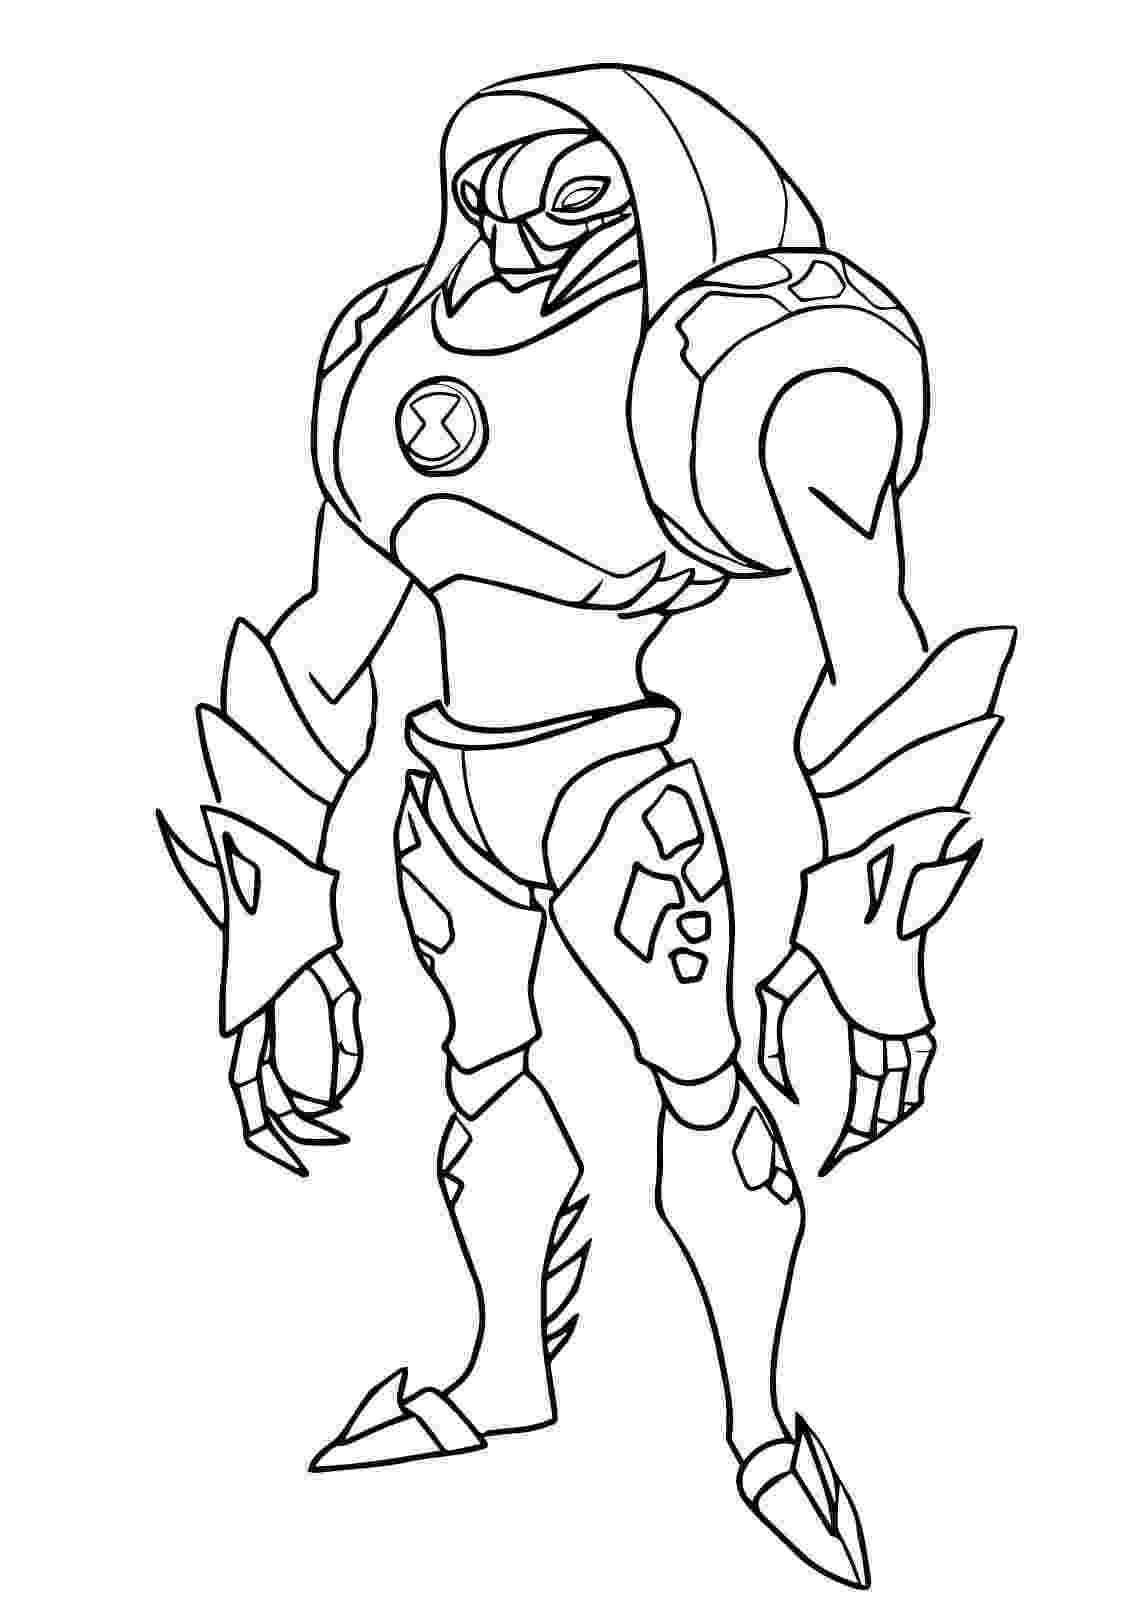 ben 10 print ben 10 coloring pages free printable coloring pages 10 ben print